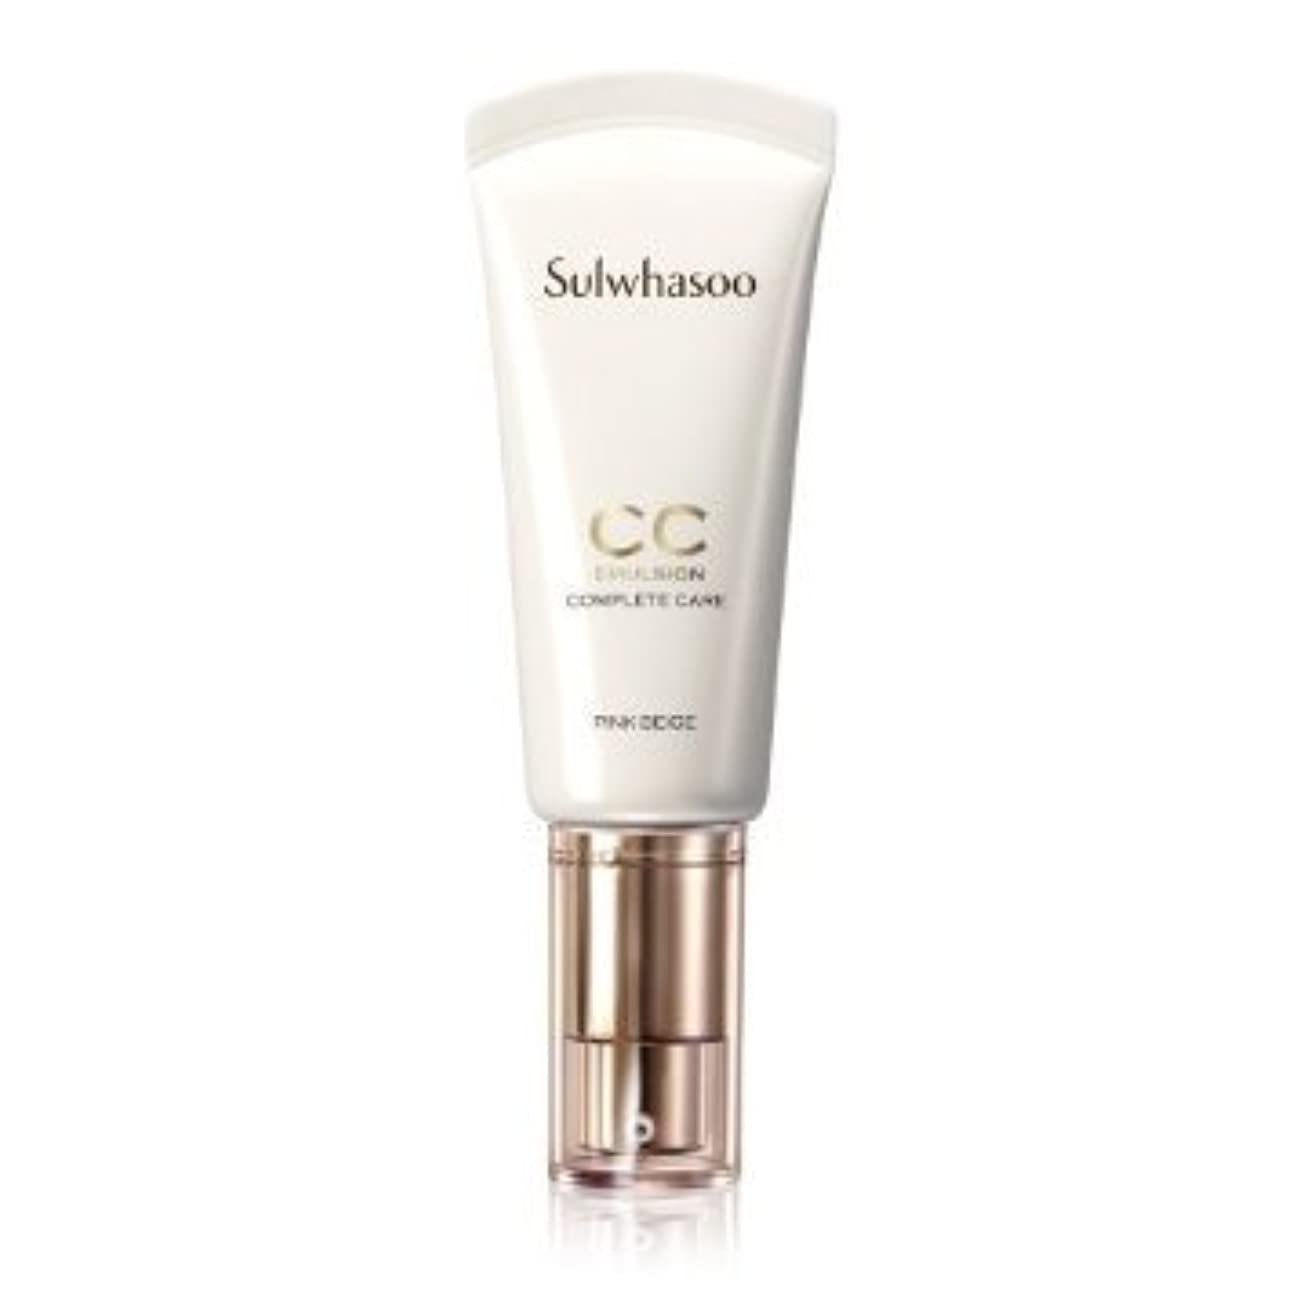 贅沢な夜明け鎖Sulwhasoo CC Emulsion BB Cream Blemish Balm #02 Medium Beige[並行輸入品]